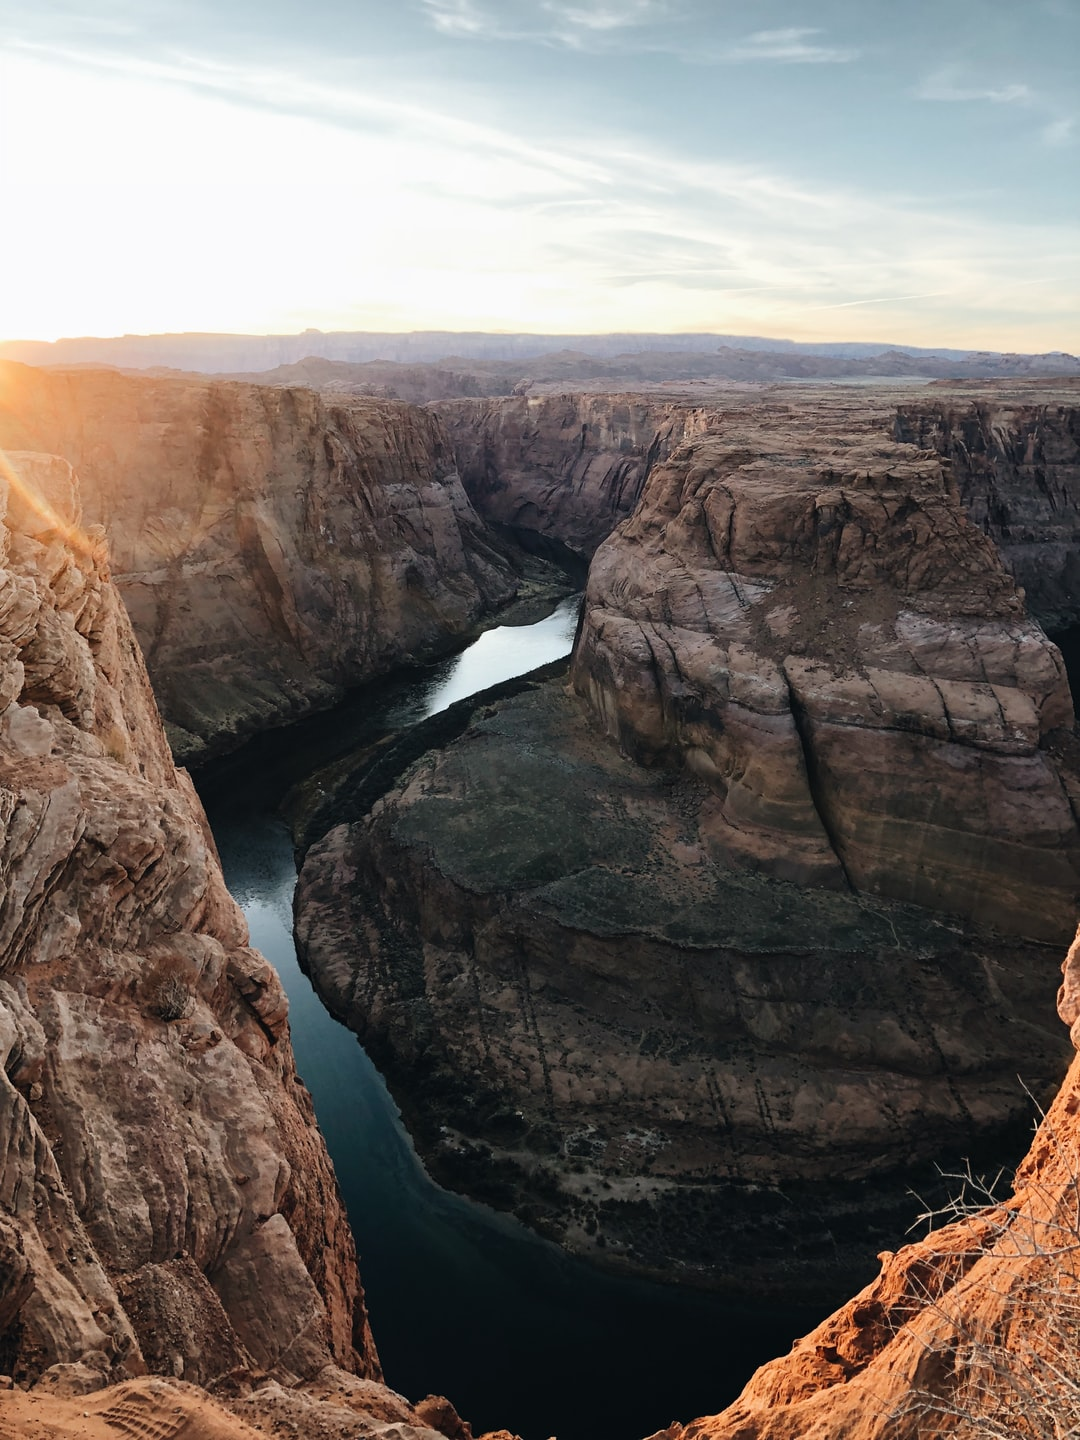 We hiked up to the famous horseshoe bend in Paige, Arizona… running, no, sprinting down to the right spot trying to make it before sundown. We had all of 3 minutes to take as many breathtaking photos as we could before it turned dark. Was the 5 hour drive for 3 minutes of this amazing view at sunset worth it? Absolutely.